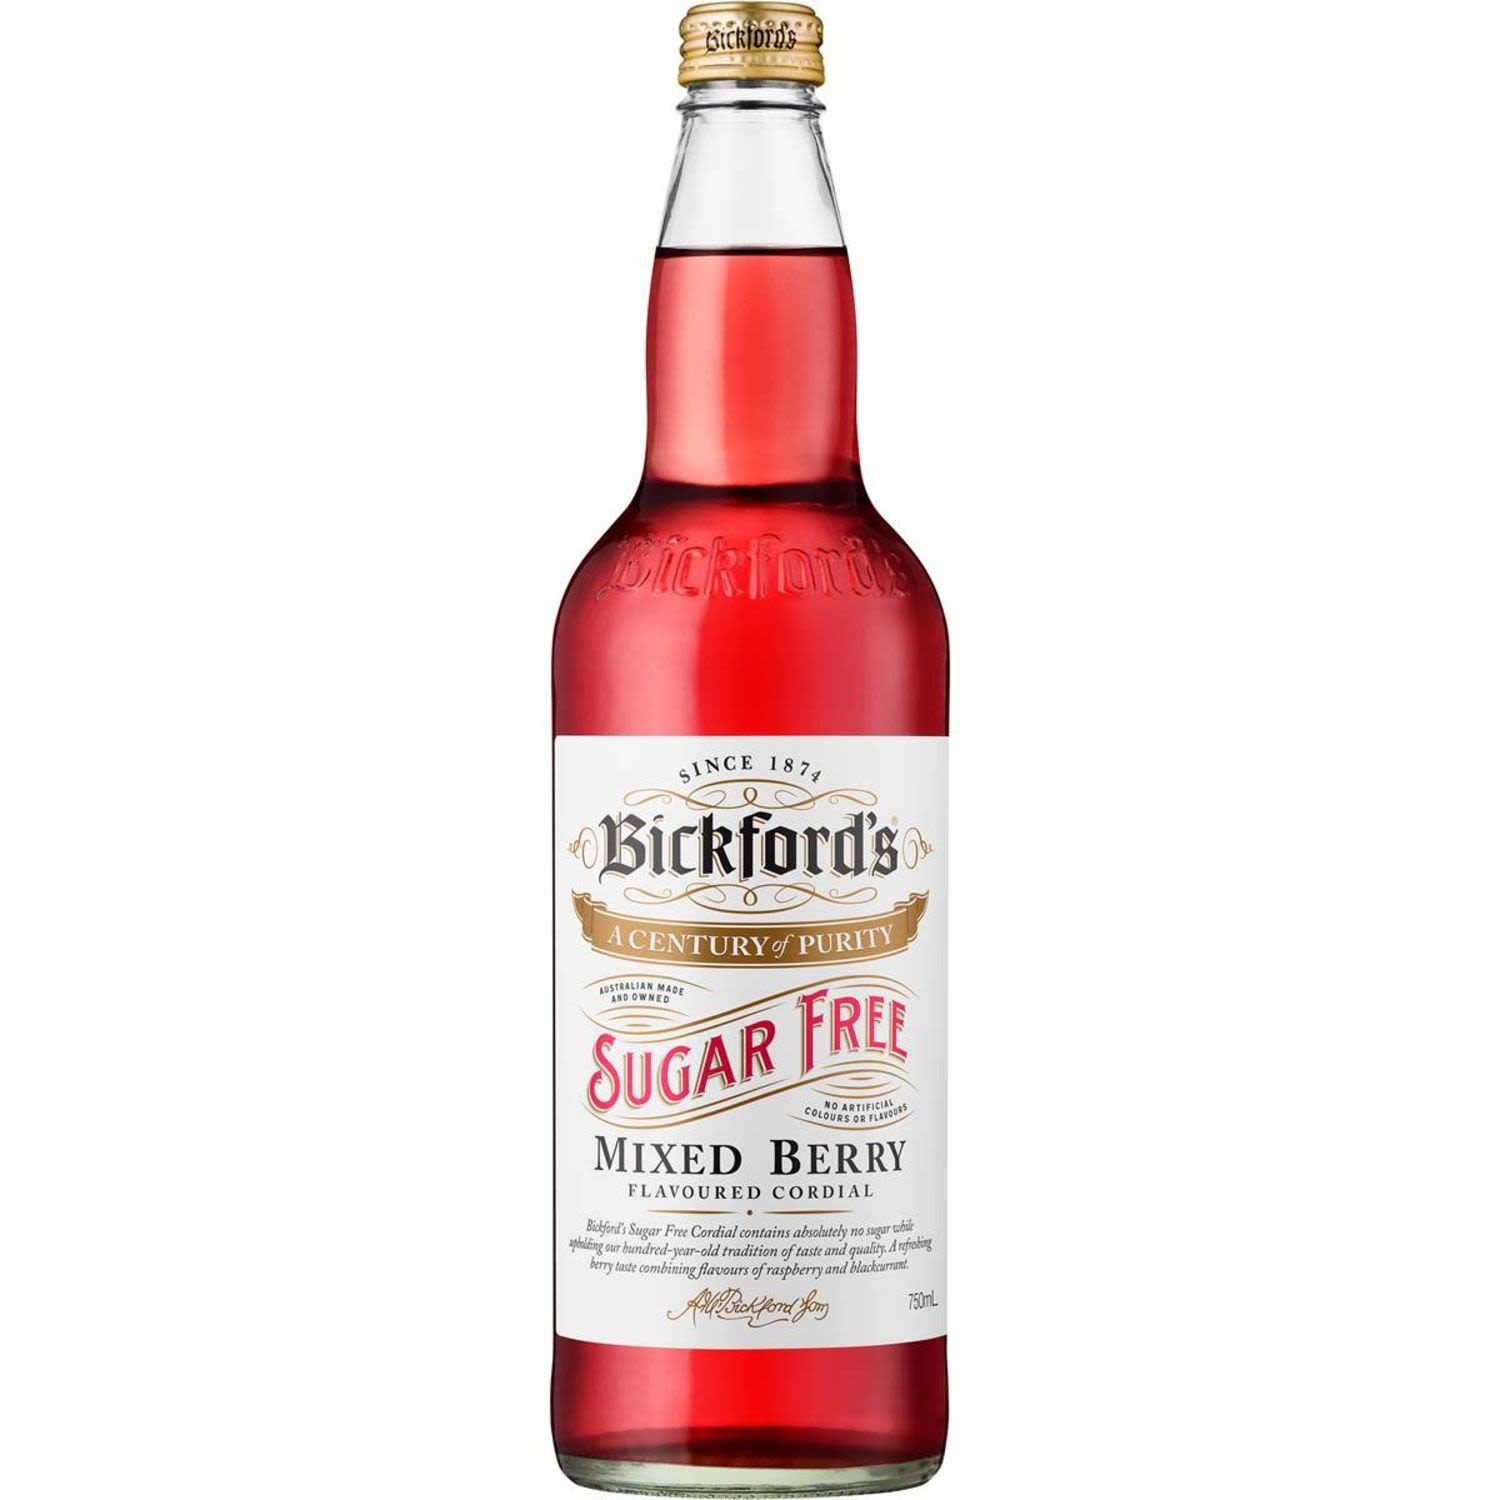 Bickford's Sugar Free Mixed Berry Flavoured Cordial, 750 Millilitre